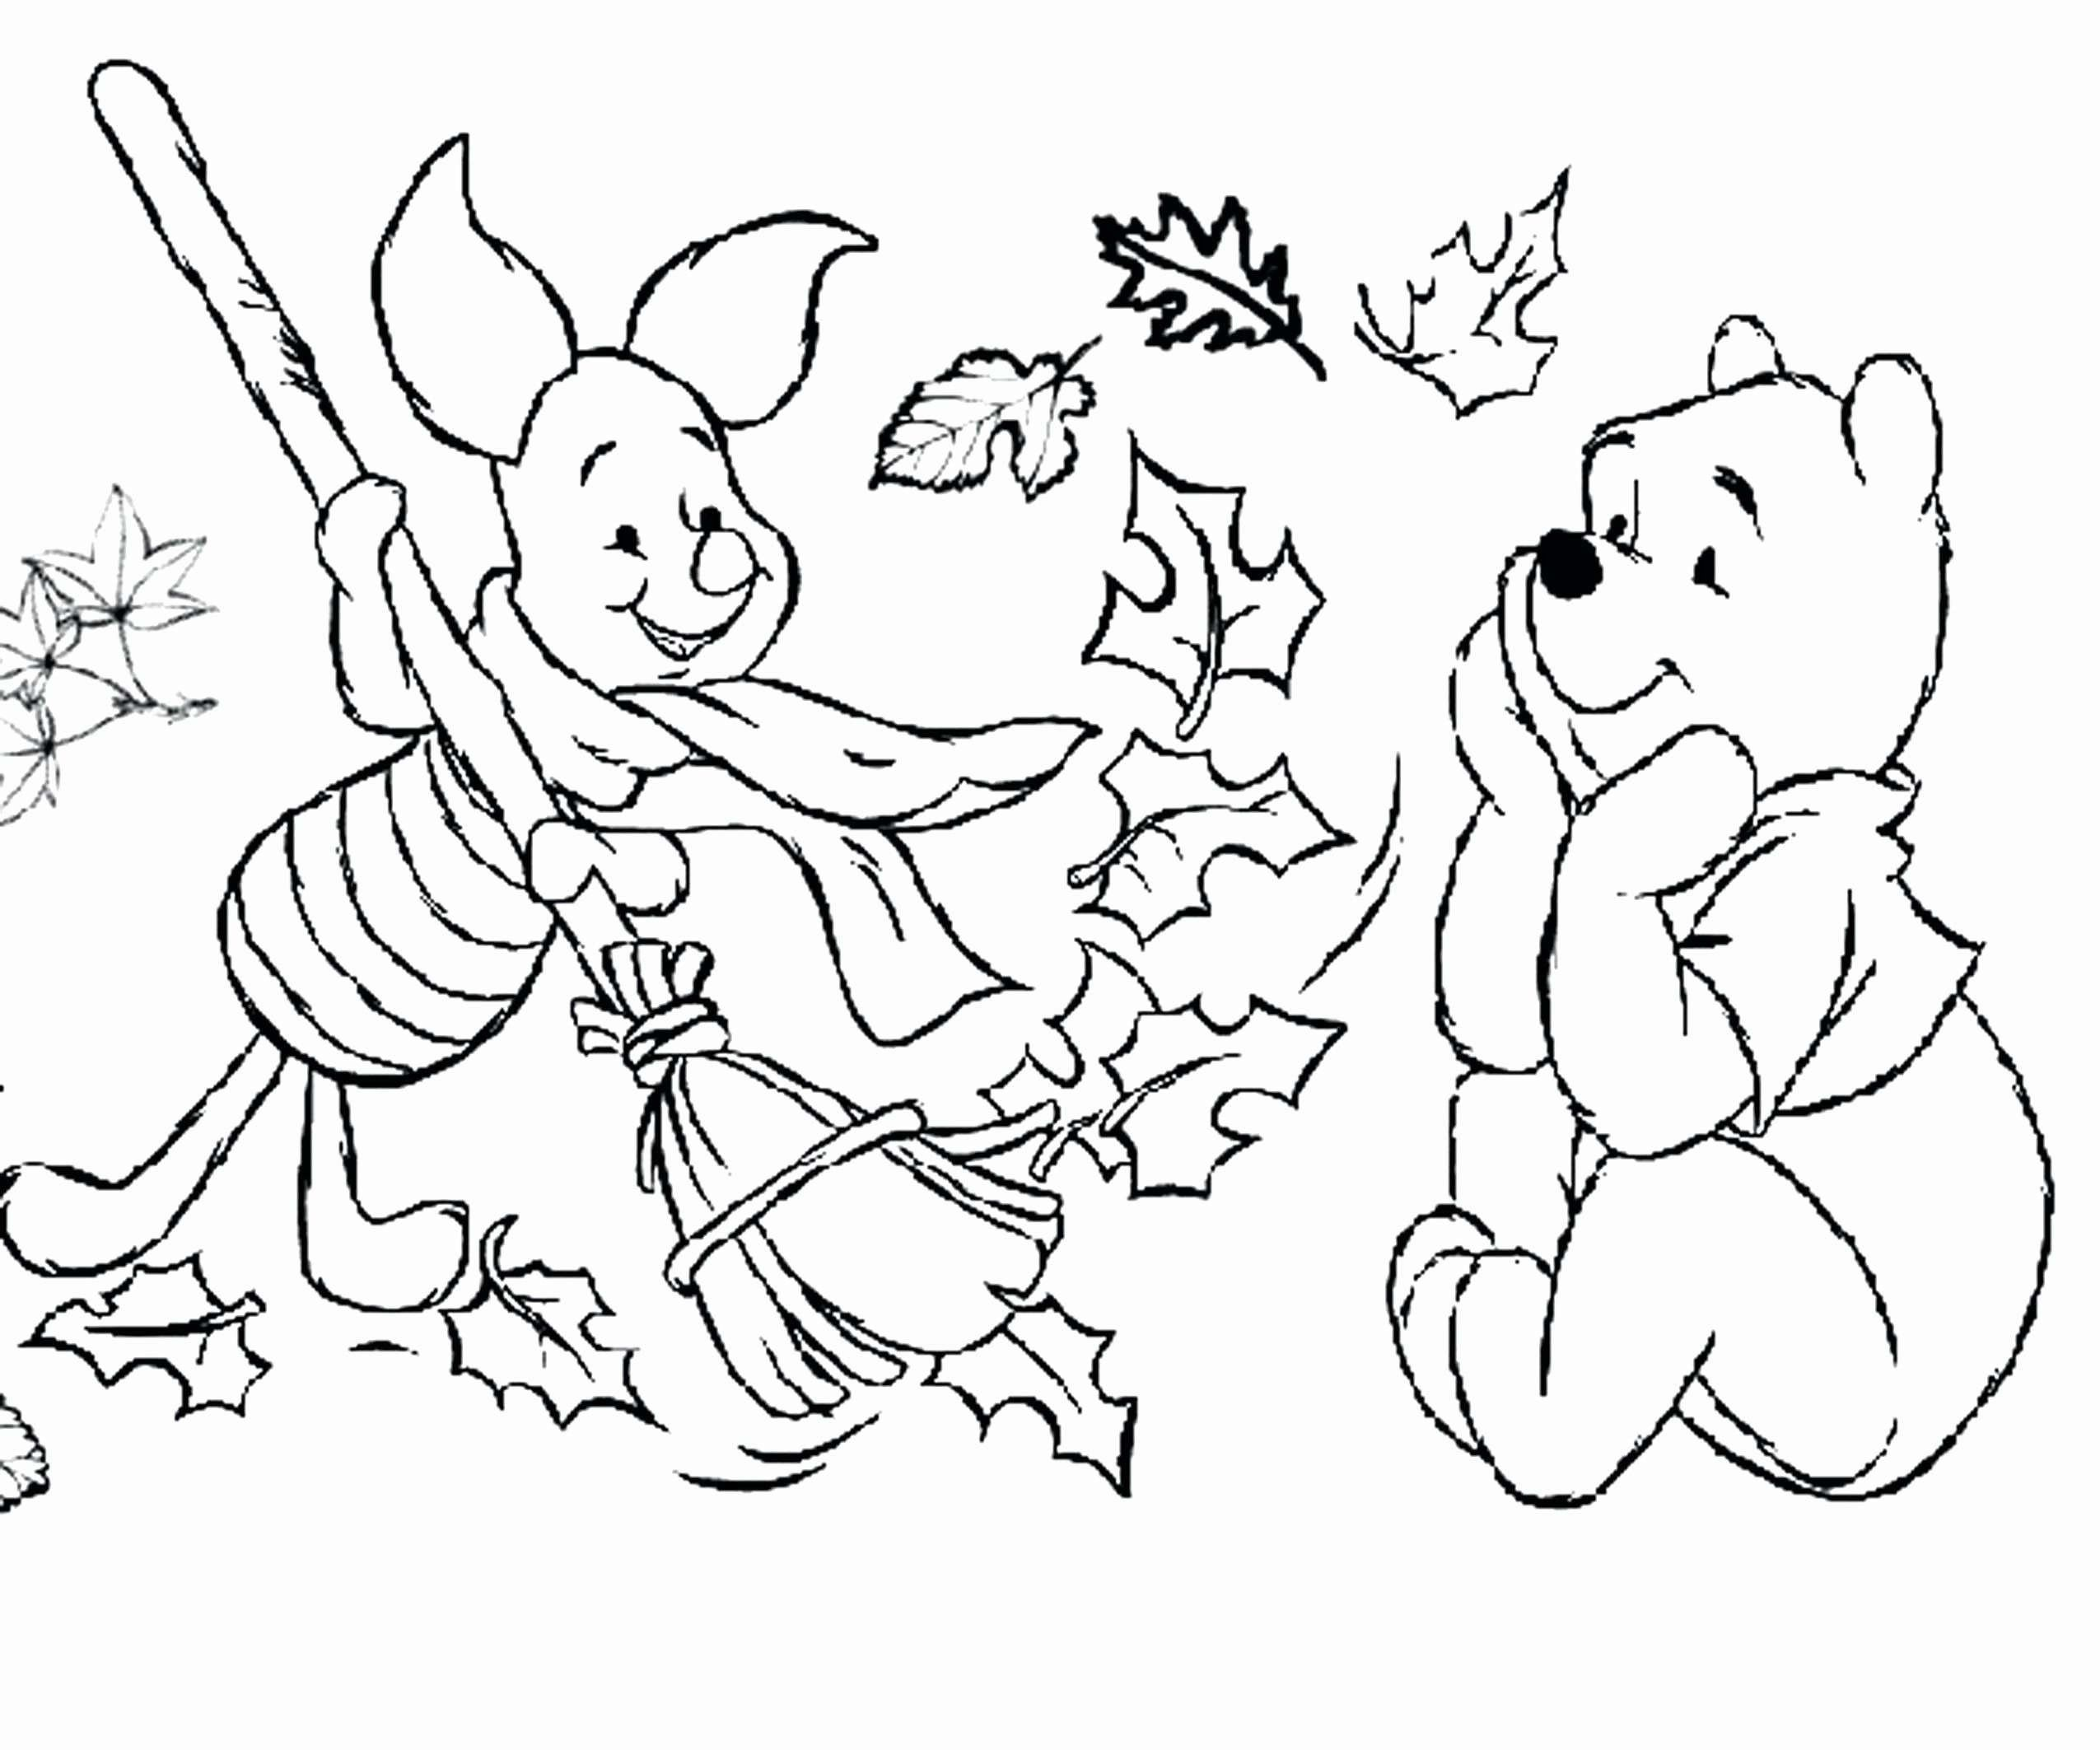 Oriental Trading Coloring Pages Beautiful 30 Oriental Trading Coloring Pages Download Coloring Animal Coloring Pages Bear Coloring Pages Pokemon Coloring Pages